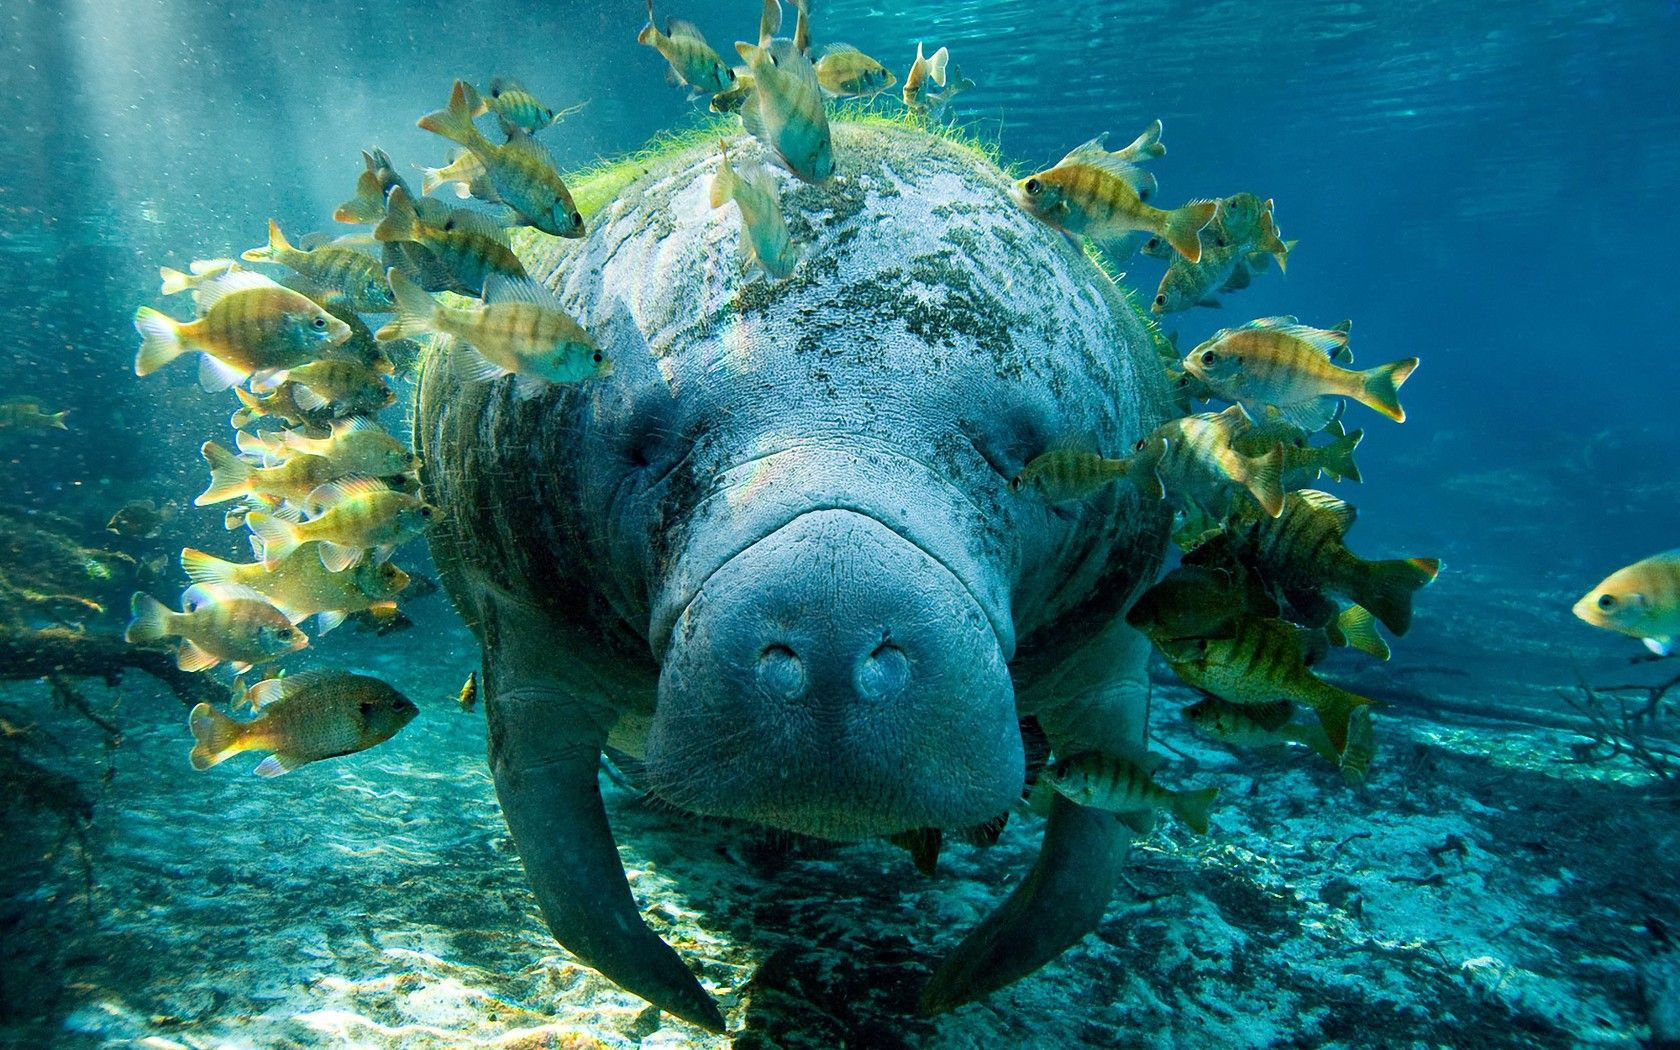 Noise Levels threaten Manatees and other Marine Life